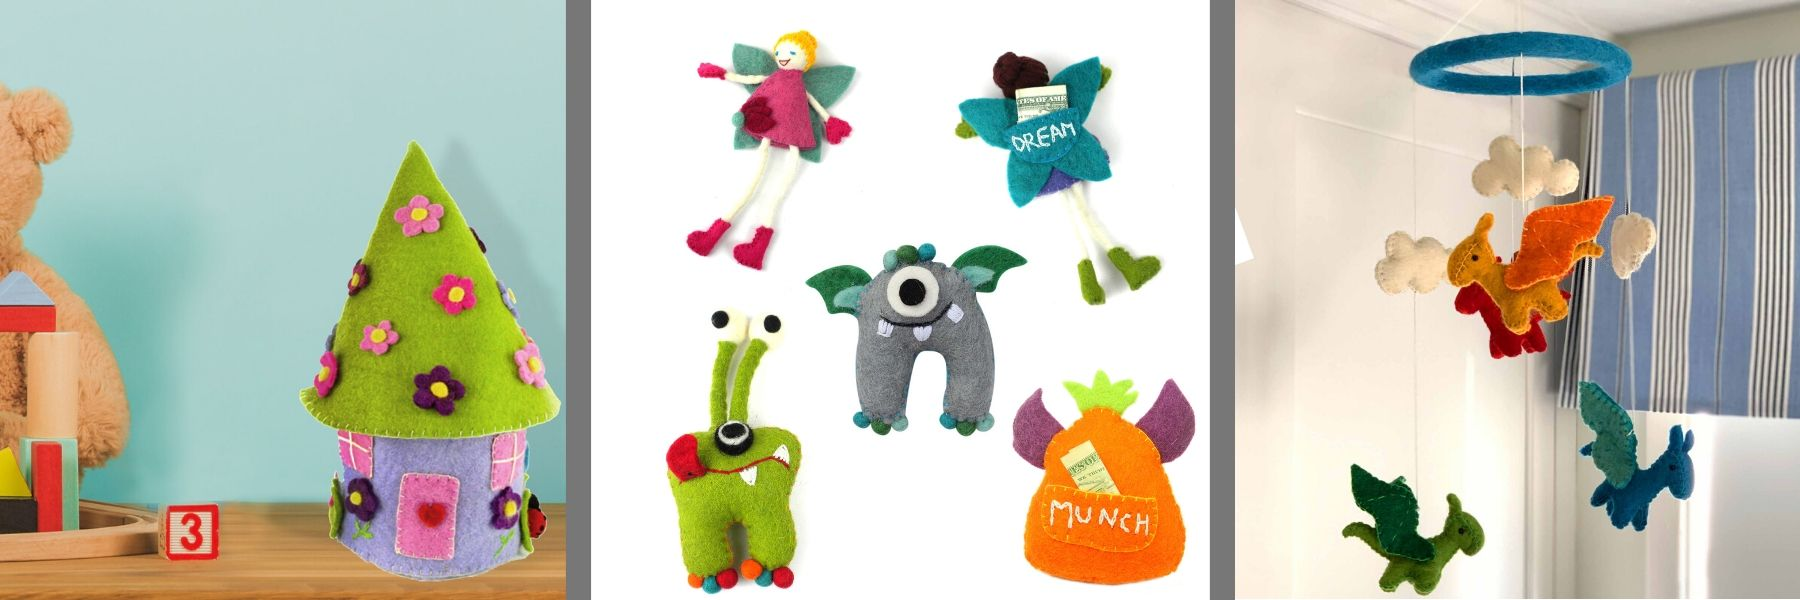 Fair Trade Wholesale Kids Collection of Felt Dragon Mobile, Tooth Pillows in Fairy and Monster Designs with pouch for the tooth and money, and felt fairy castle on a kids dresser.